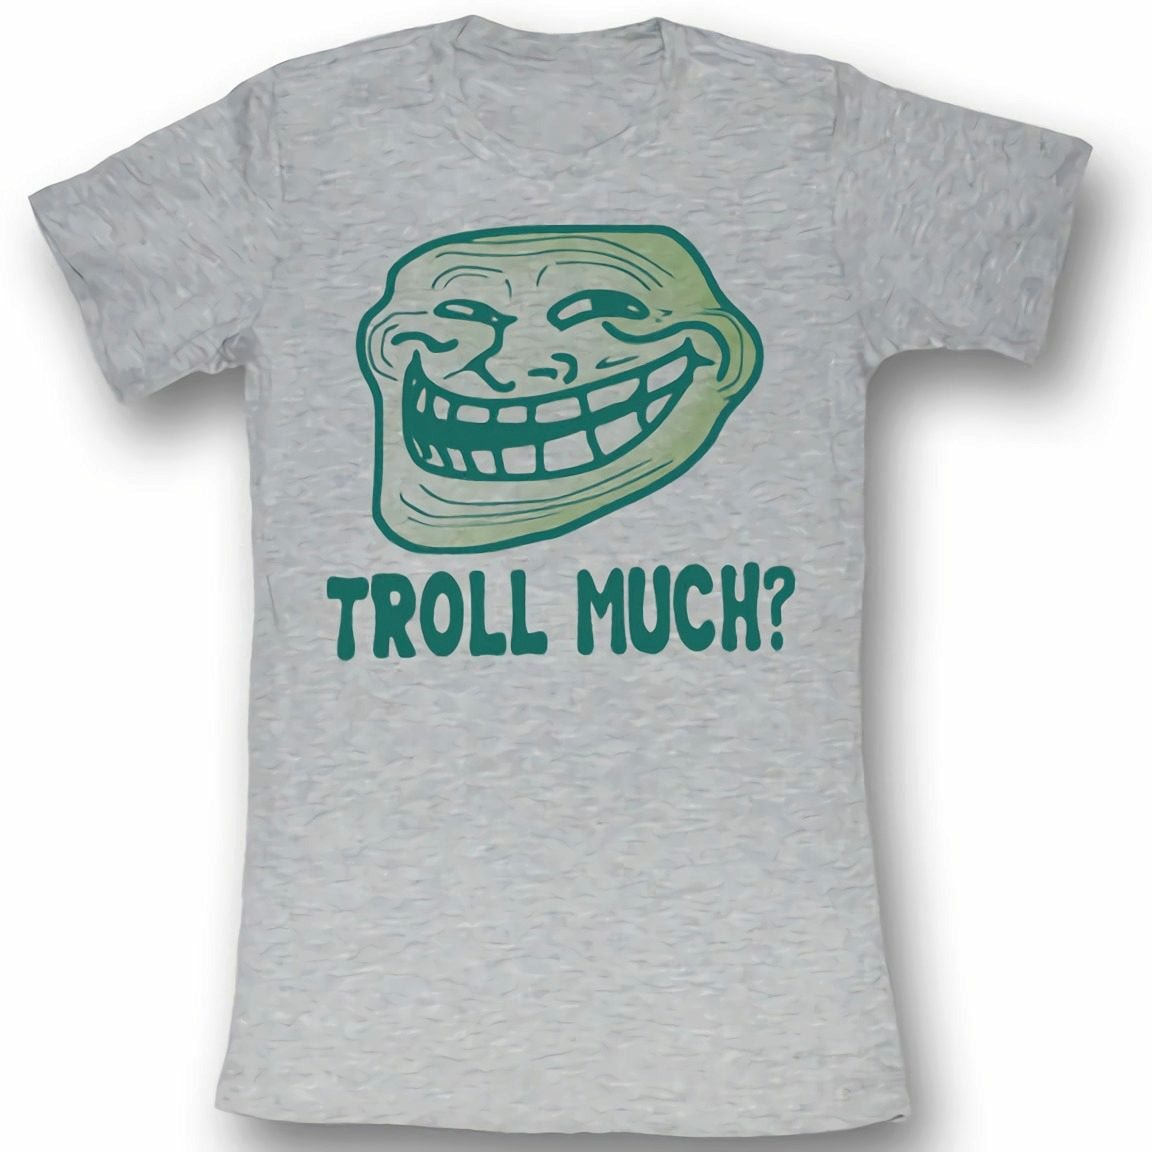 Troll Face You Mad Troll Much? Juniors Heather Grey T-Shirt